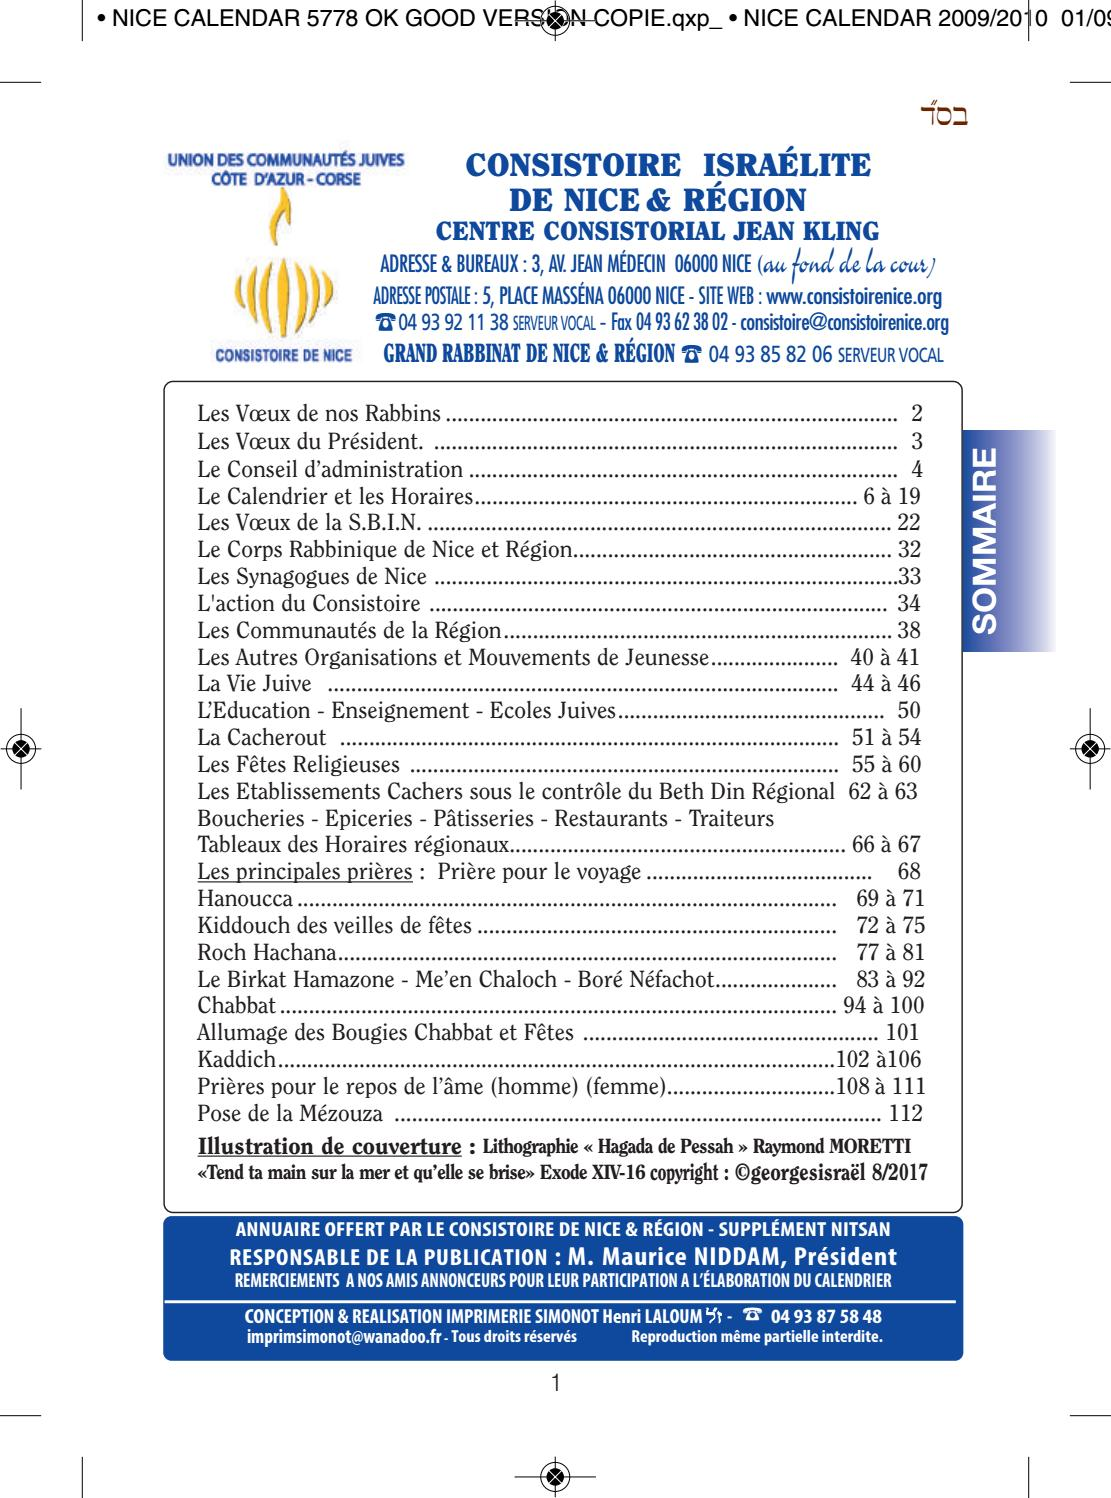 Calendrier Hebraique 5778.Calendrier 5778 Integral By Macommunaute Issuu